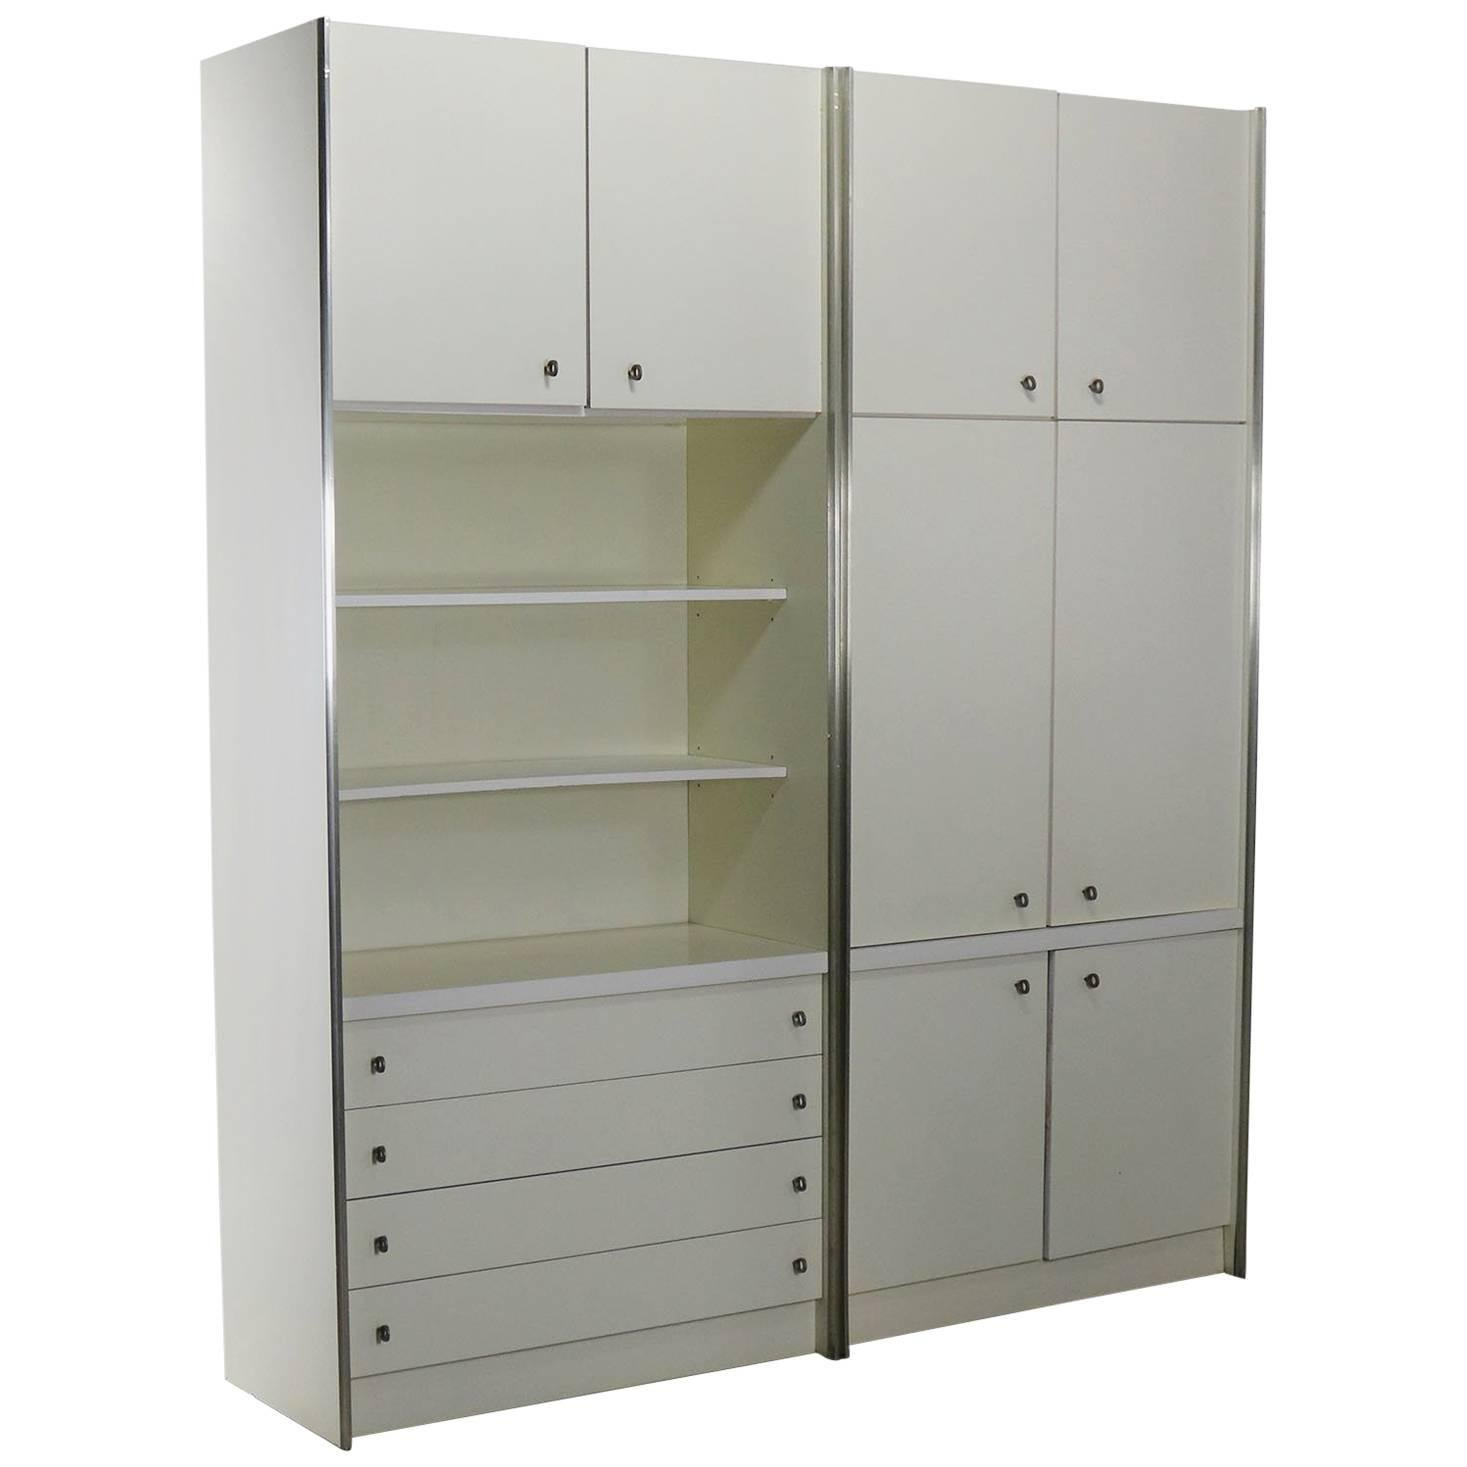 midcentury modern white laminate wall unit bookcase display cabinets a pair